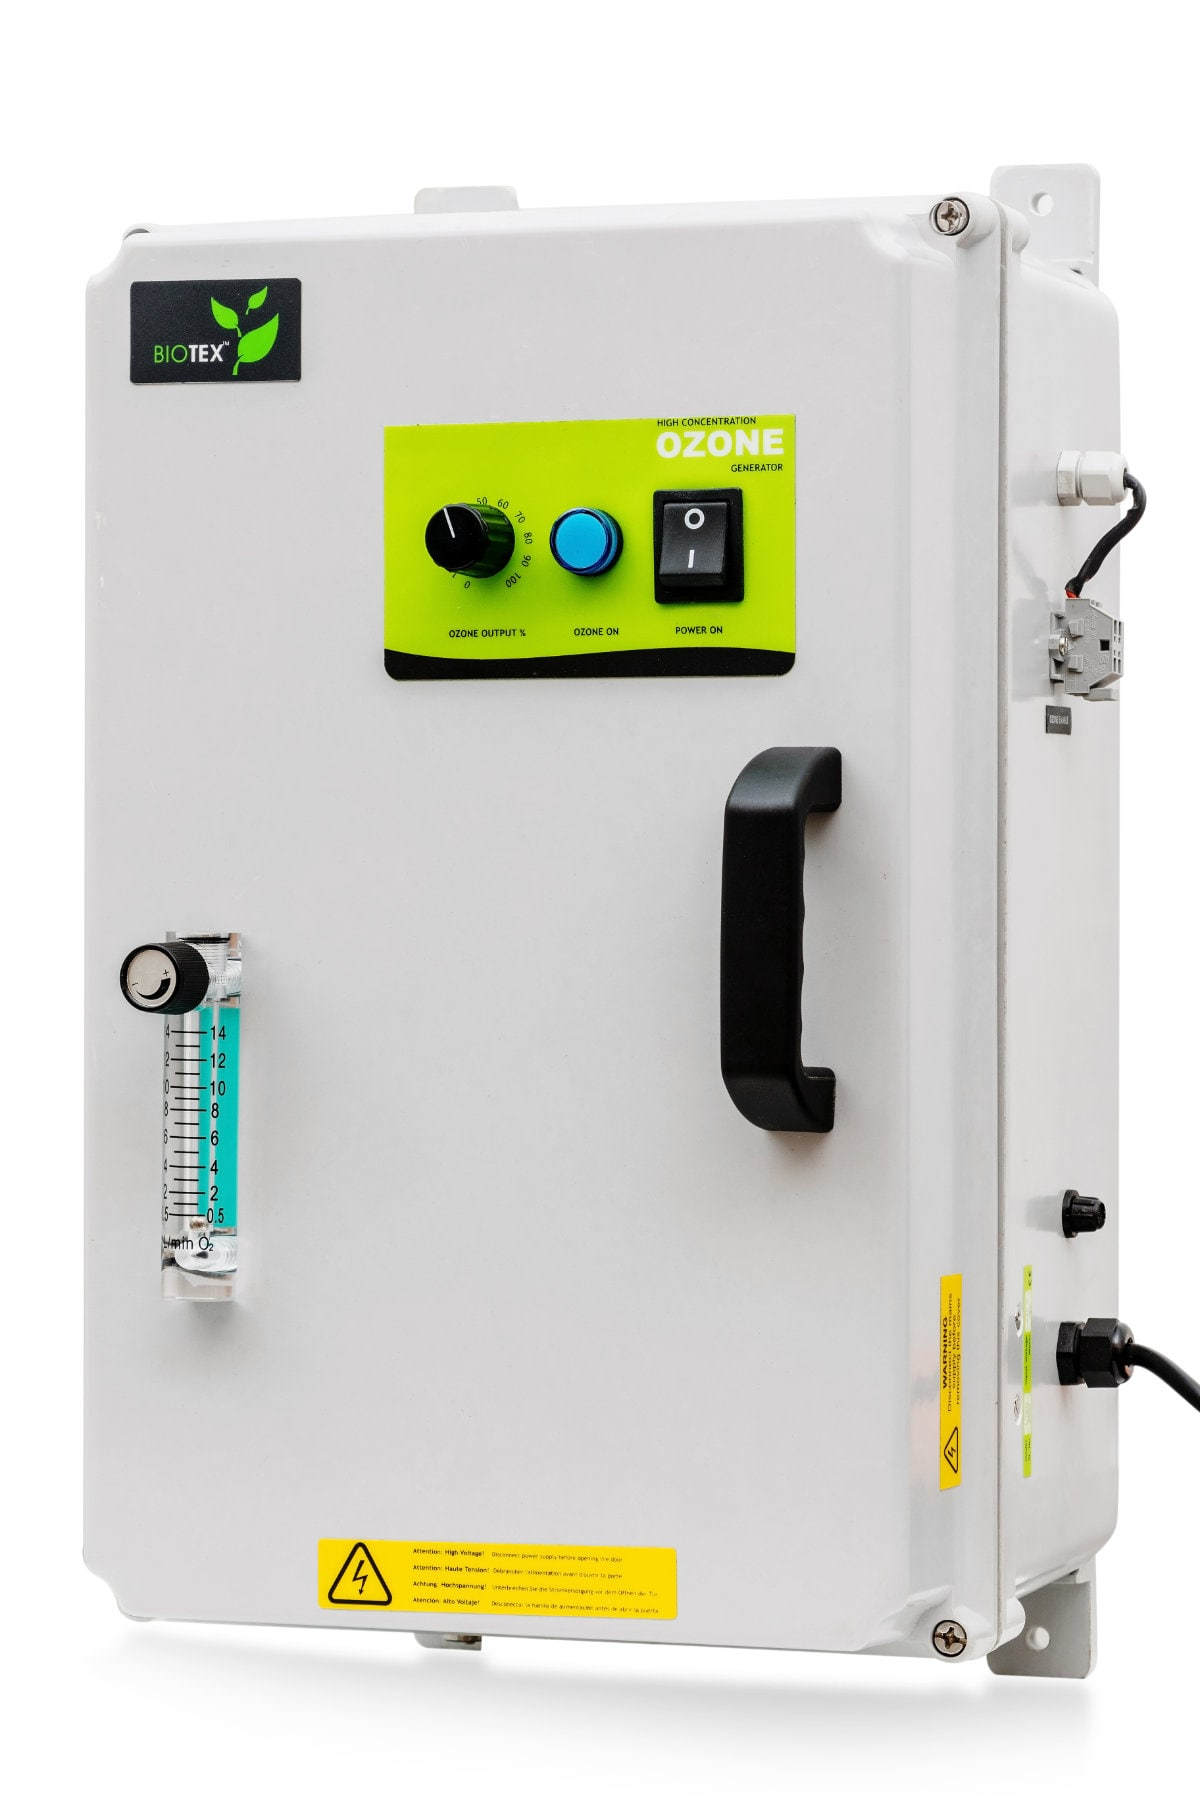 An image of Biotex's Room Ozone Generator